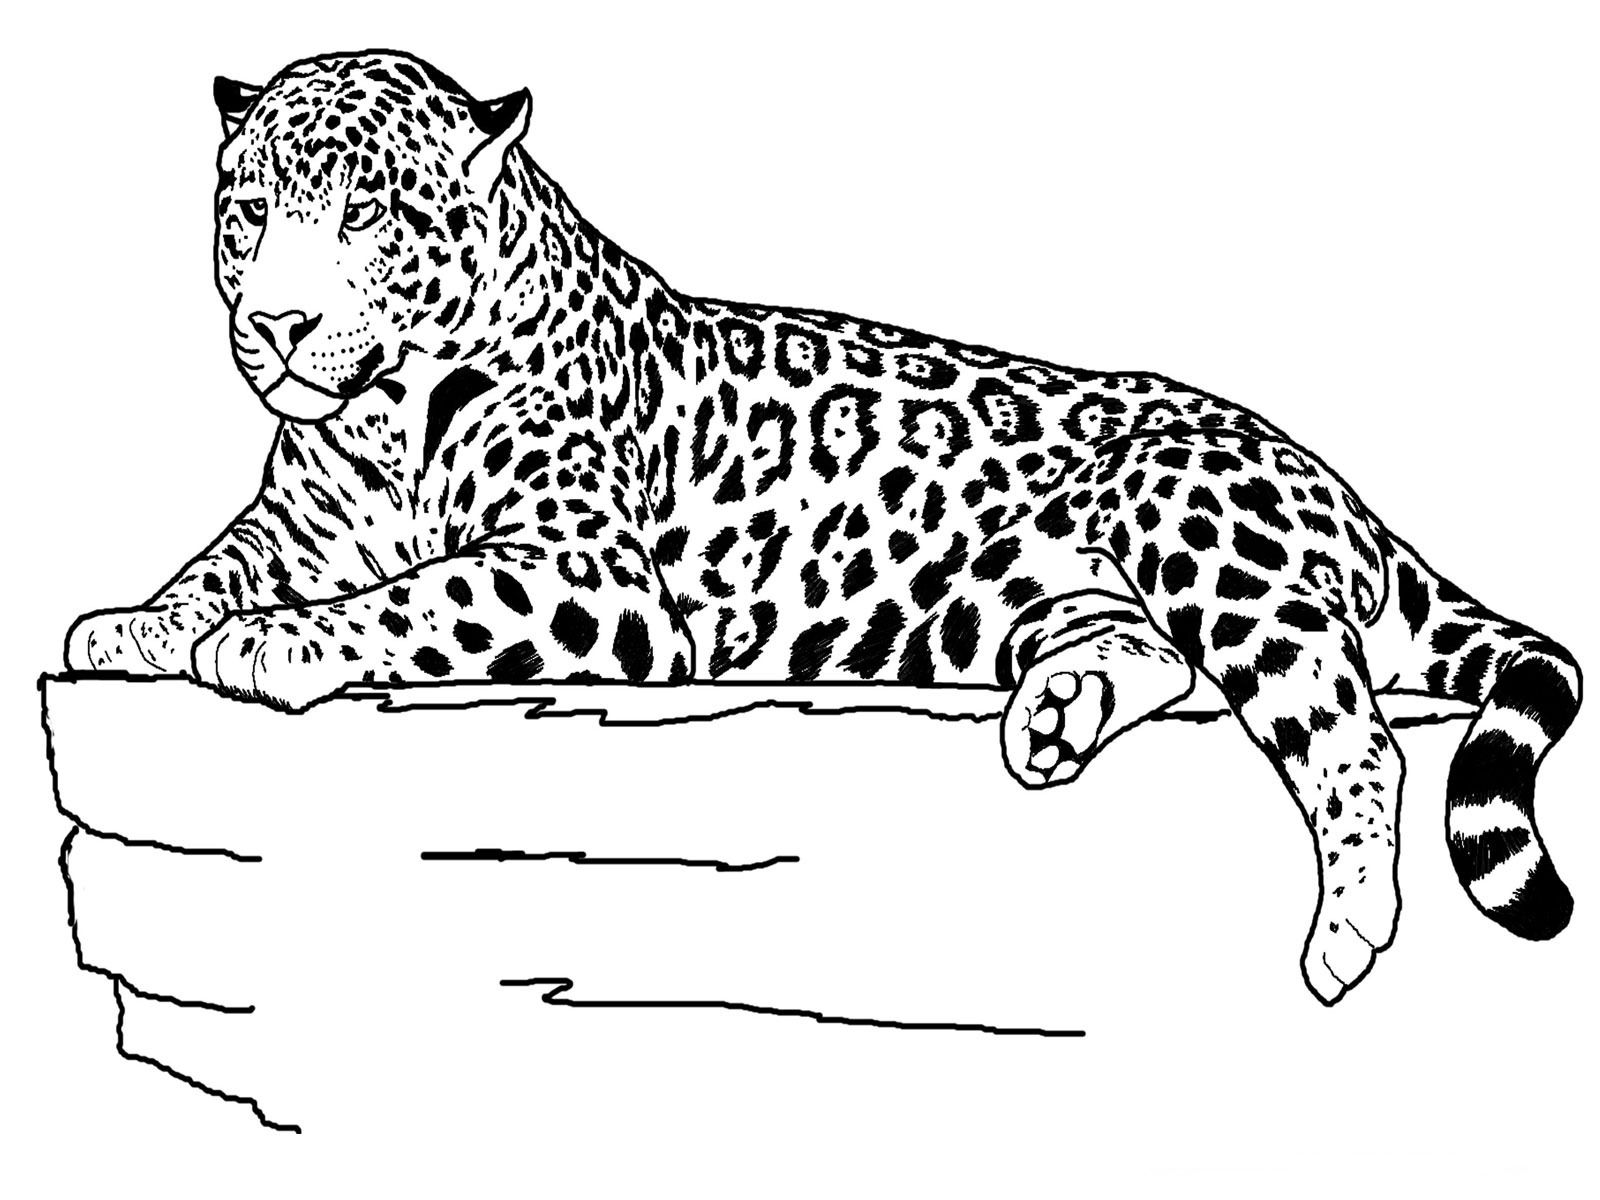 Free coloring pages realistic animals - Realistic Animals Coloring Pages Printable Coloring Pages Sheets For Kids Get The Latest Free Realistic Animals Coloring Pages Images Favorite Coloring